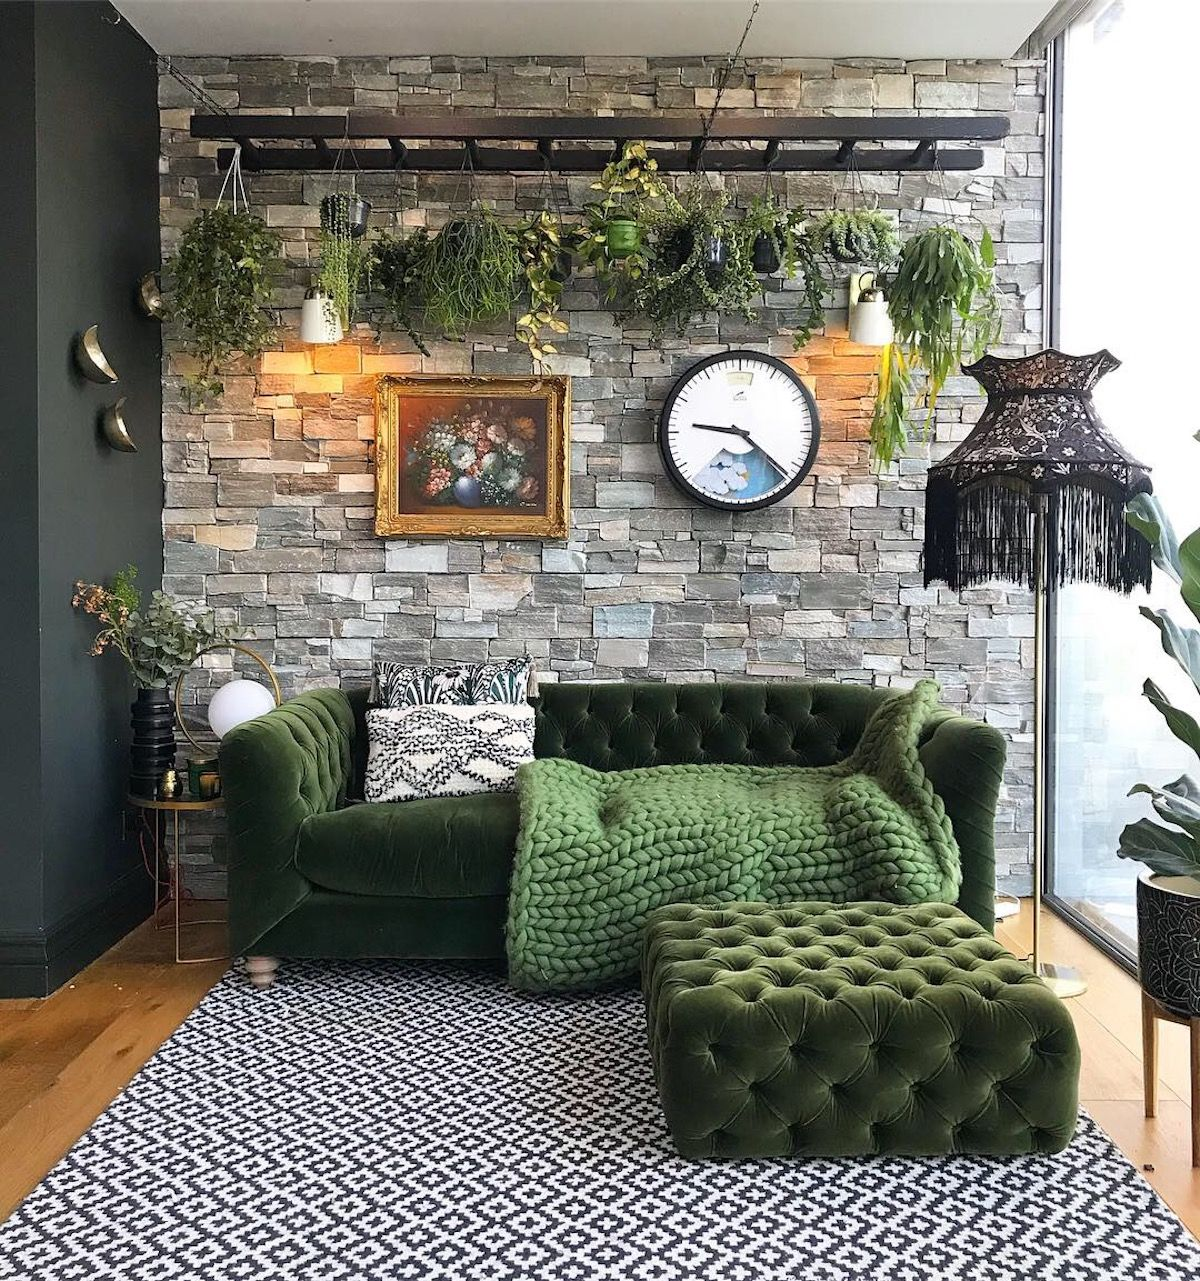 Eclectic Decorating Tips From A Top Interiors Blogger Farm House